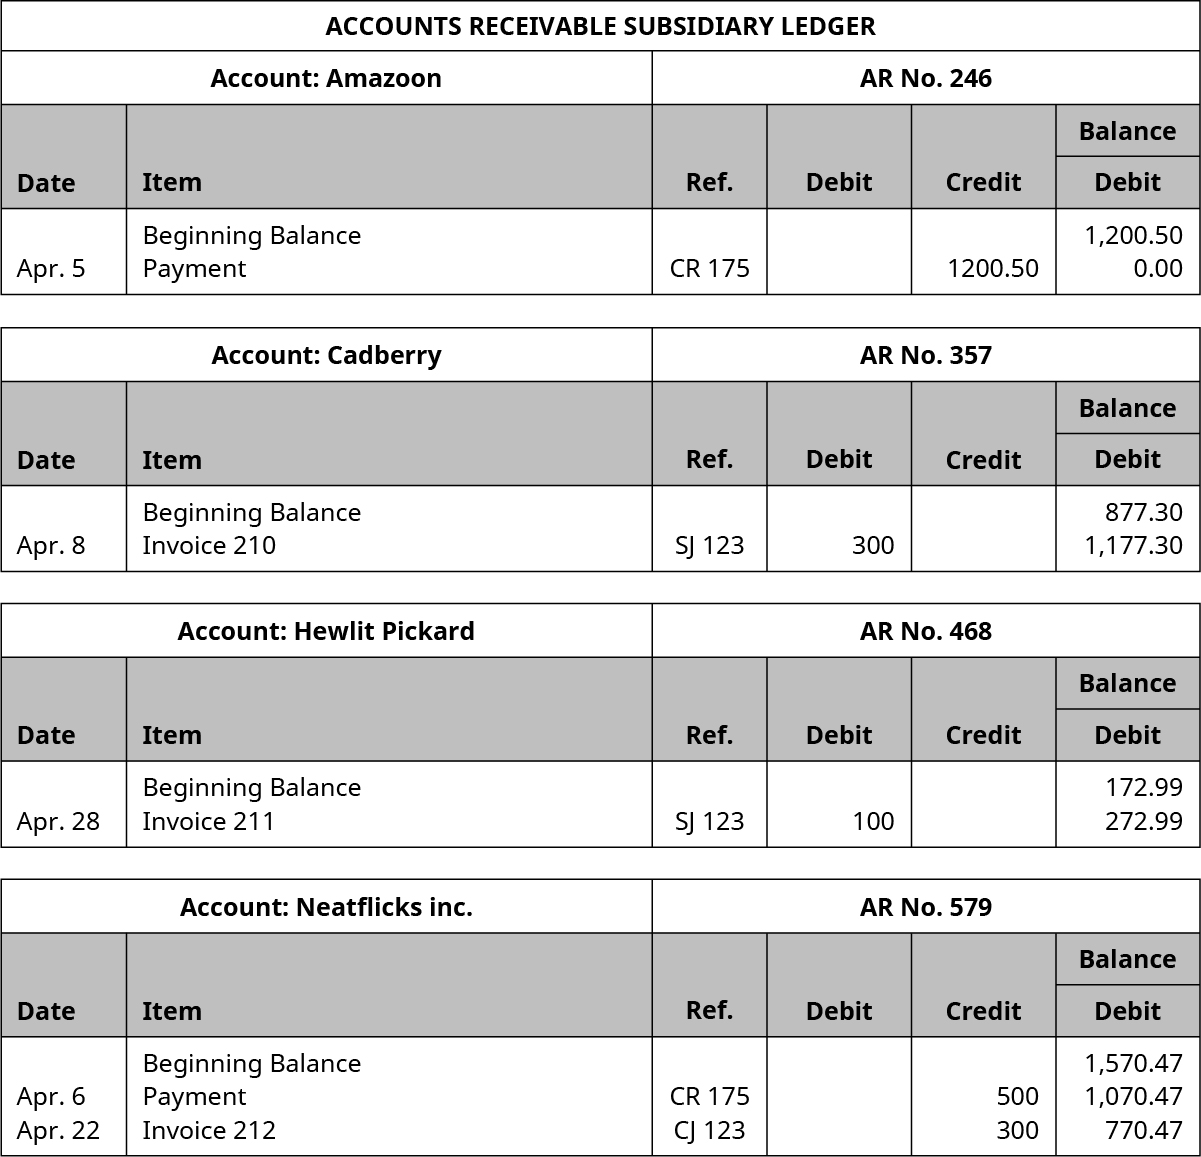 Accounts Receivable Subsidiary Ledger. Six Columns, labeled left to right: Date, Item, Reference, Debit, Credit, Balance. Amazoon Account, AR Number 246. Line One: Blank; Beginning Balance; Blank; Blank; Blank; 1,200.50. Line Two: April 5; Payment; CR 175; Blank; 1,200.50; 0.00. Cadberry Account, AR Number 357. Line One: Blank; Beginning Balance; Blank; Blank; Blank; 877.30. Line Two: April 8; Invoice 210; SJ 123; 300; Blank; 1,177.30. Hewlit Pickard Account, AR Number 468. Line One: Blank; Beginning Balance; Blank; Blank; Blank; 172.99. Line Two: April 28; Invoice 211; SJ 123; 100; Blank; 272.99. Neatflicks, Inc. Account, AR Number 579. Line One: Blank, Beginning Balance; Blank; Blank; Blank; 1,570.47. Line Two: April 6; Payment; CR 175; Blank; 500; 1,070.47. Line Three: April 22; Invoice 212; CJ 123; Blank; 300; 770.47.